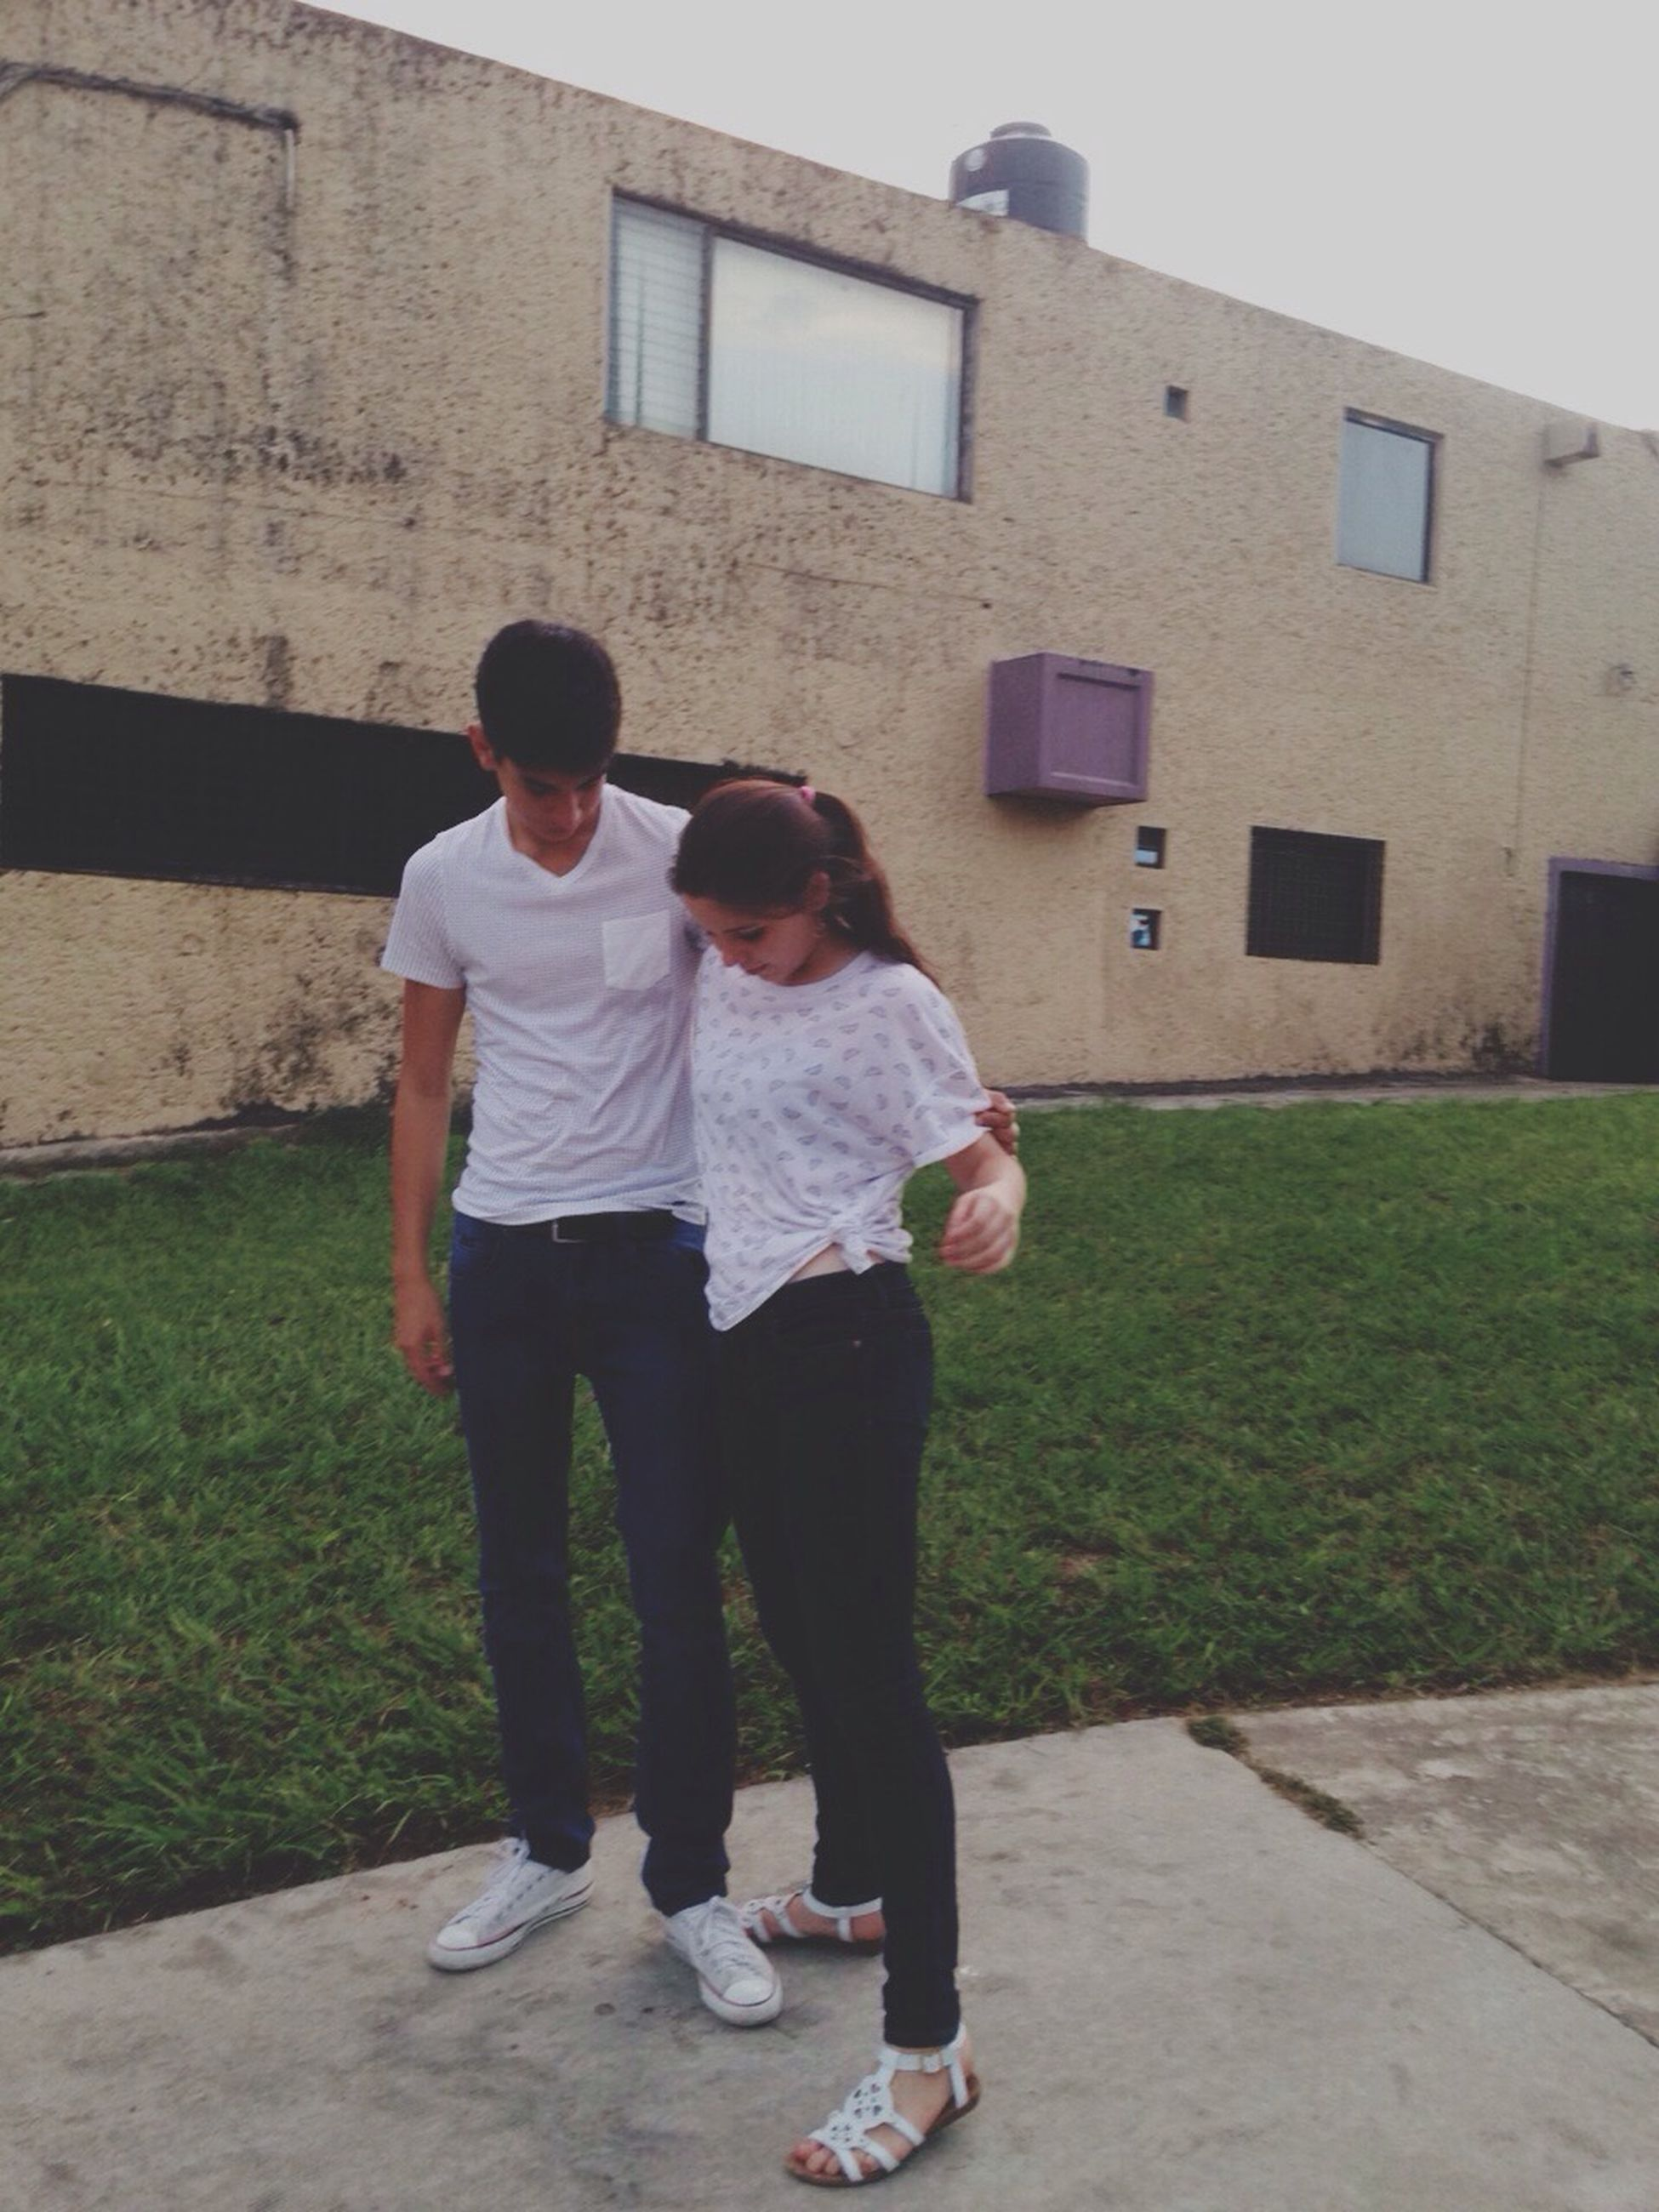 full length, childhood, boys, lifestyles, casual clothing, leisure activity, elementary age, building exterior, built structure, architecture, togetherness, girls, person, bonding, love, innocence, grass